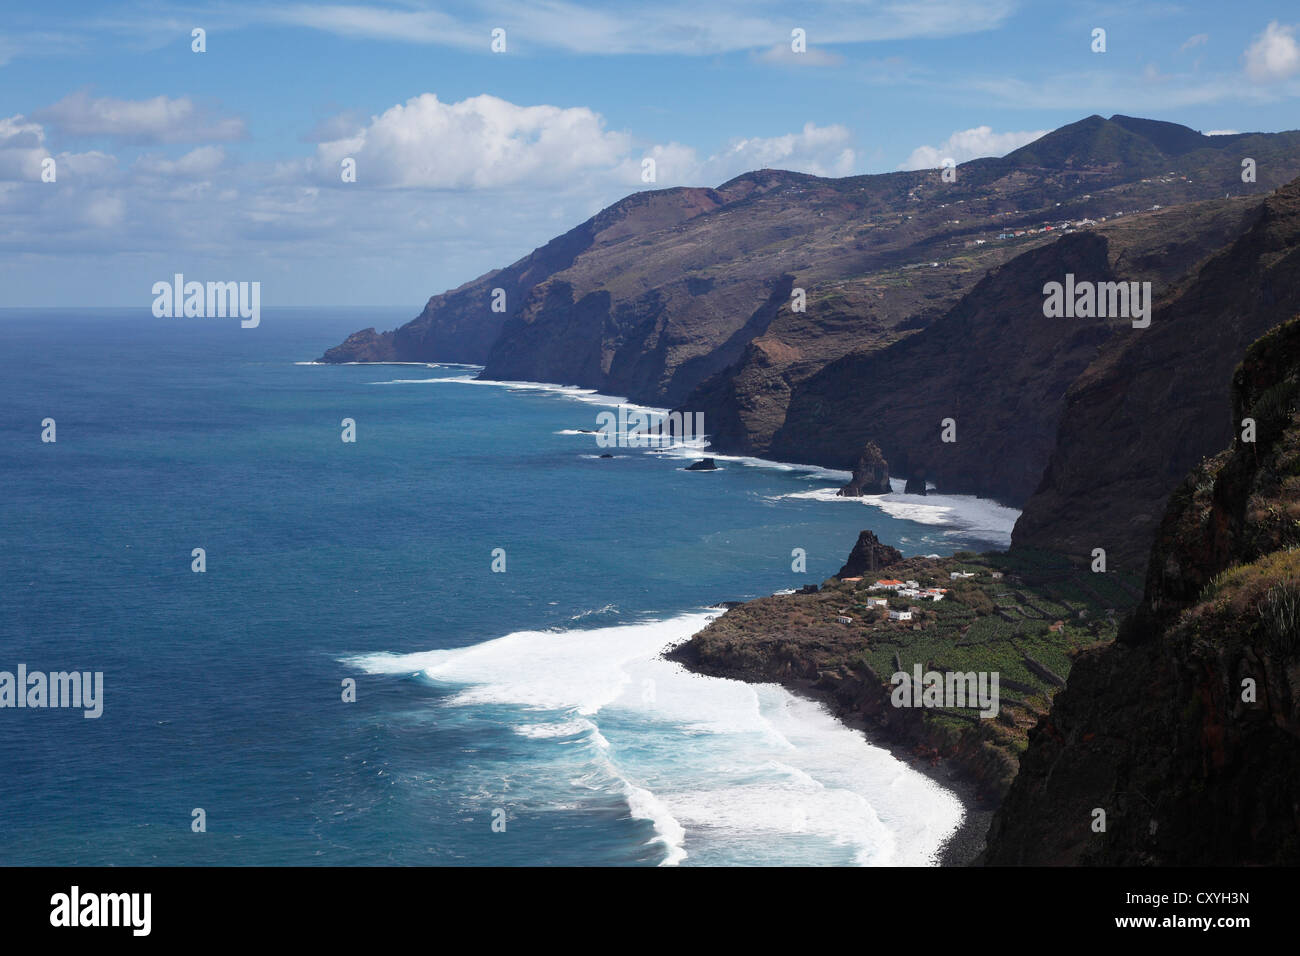 North coast with Fajana, view from El Tablado, La Palma, Canary Islands, Spain, Europe - Stock Image